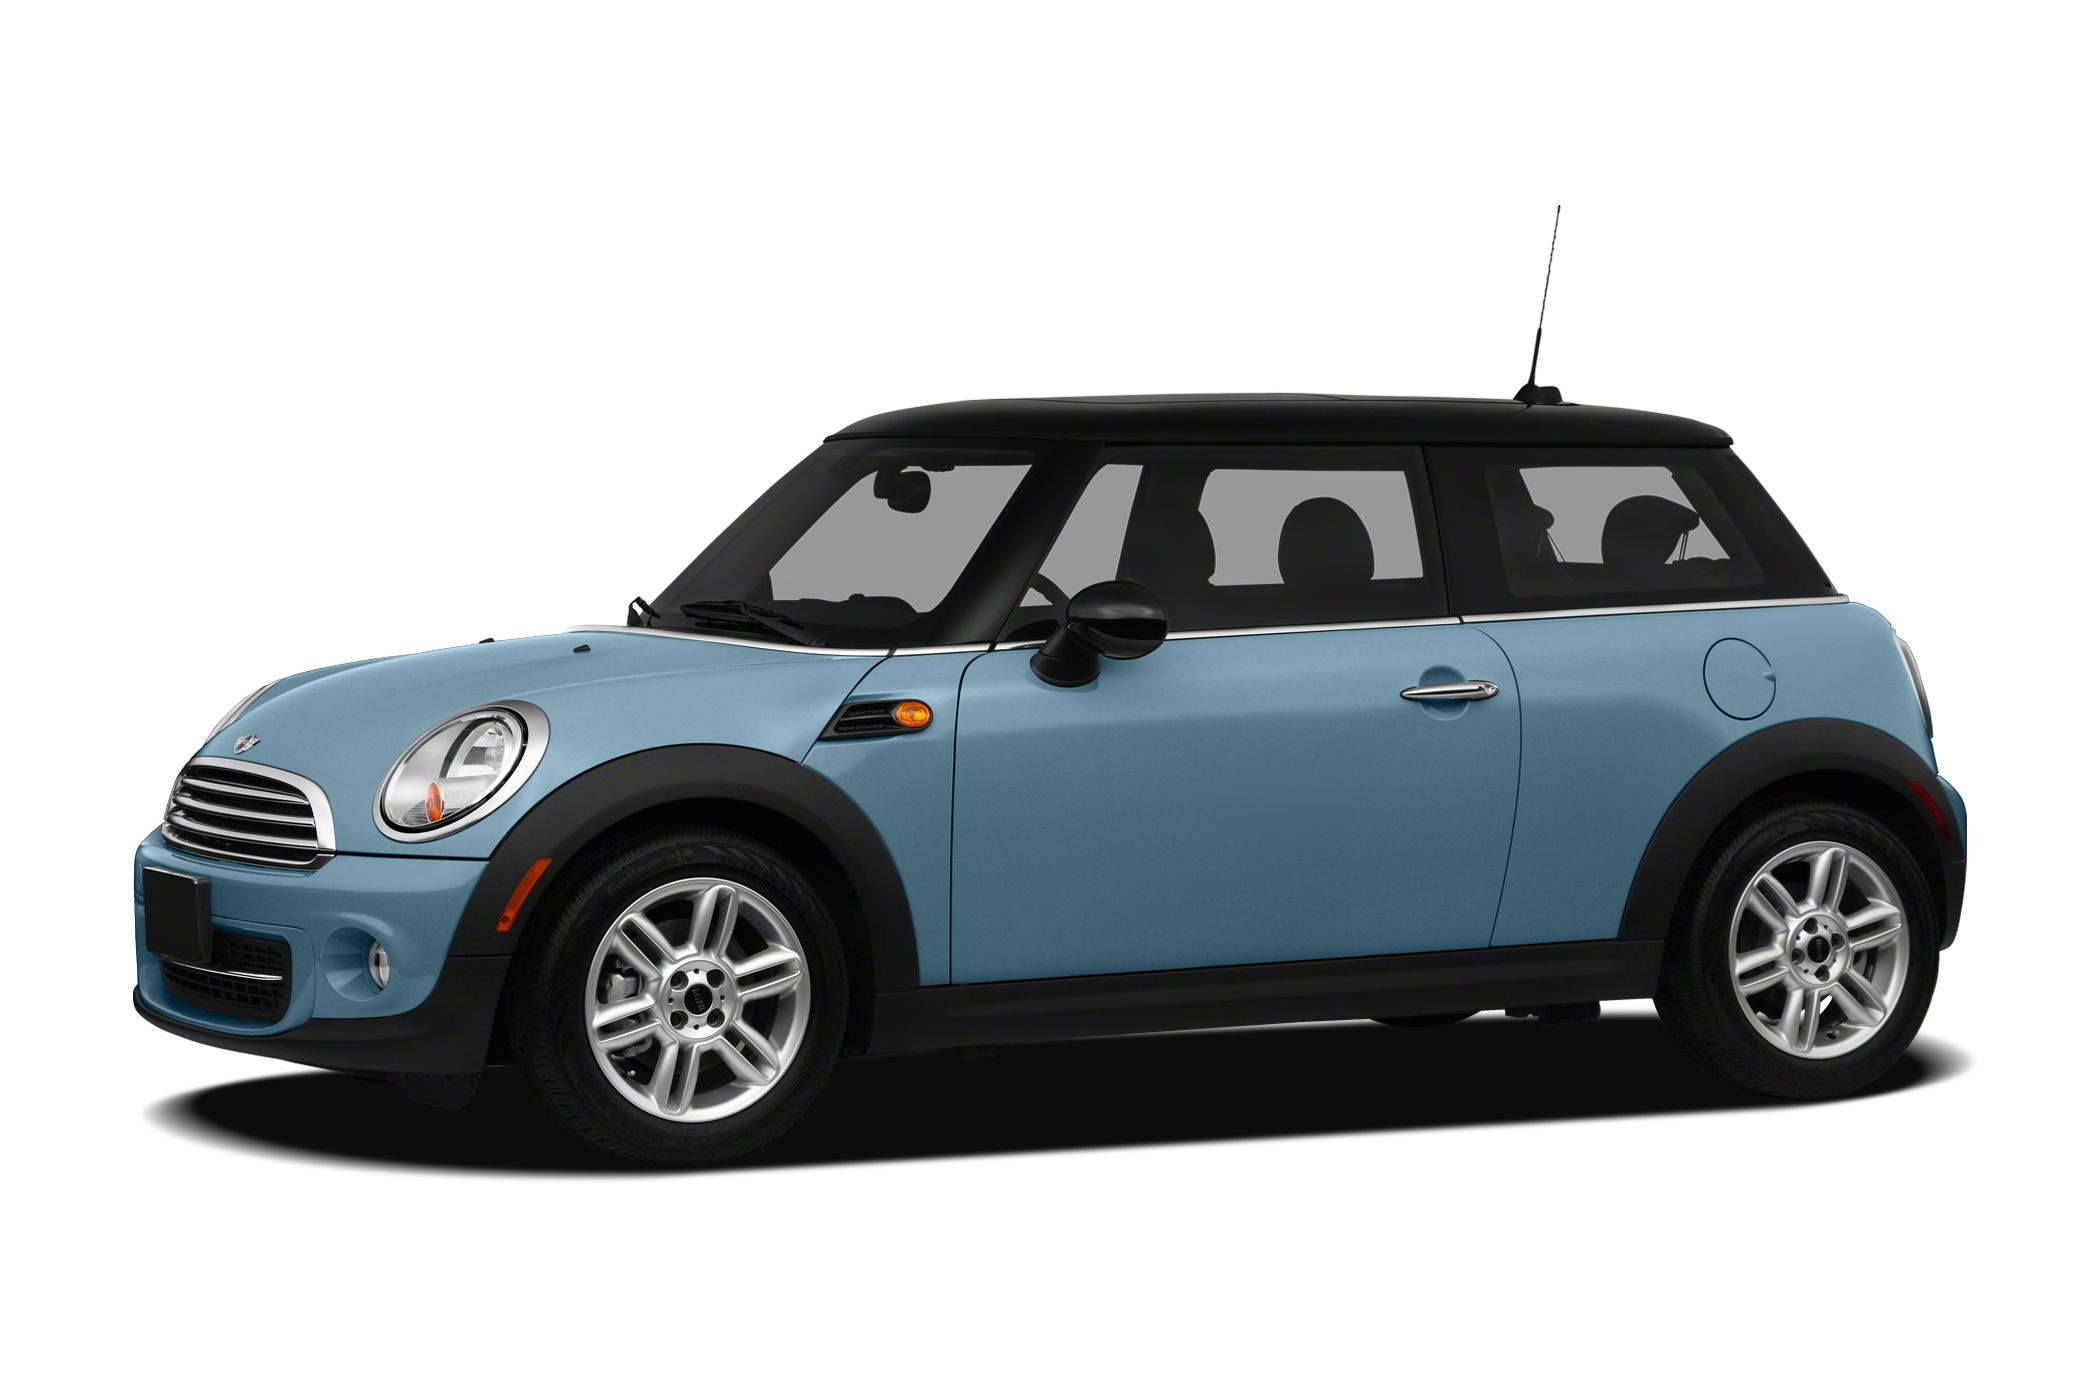 2012 MINI Cooper Base Hatchback for sale in Hartford for $15,995 with 42,627 miles